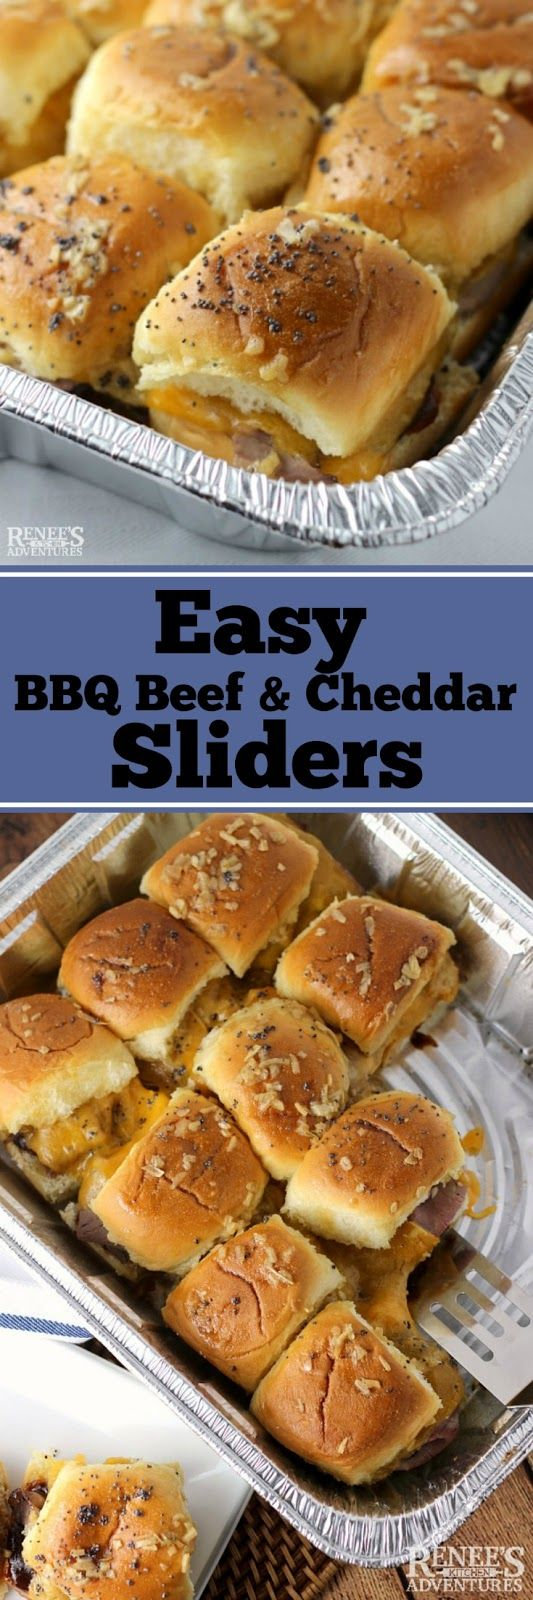 Easy BBQ Beef and Cheddar Sliders | easy appetizer recipe for slider sandwiches made with roast beef and cheddar cheese perfect football food.